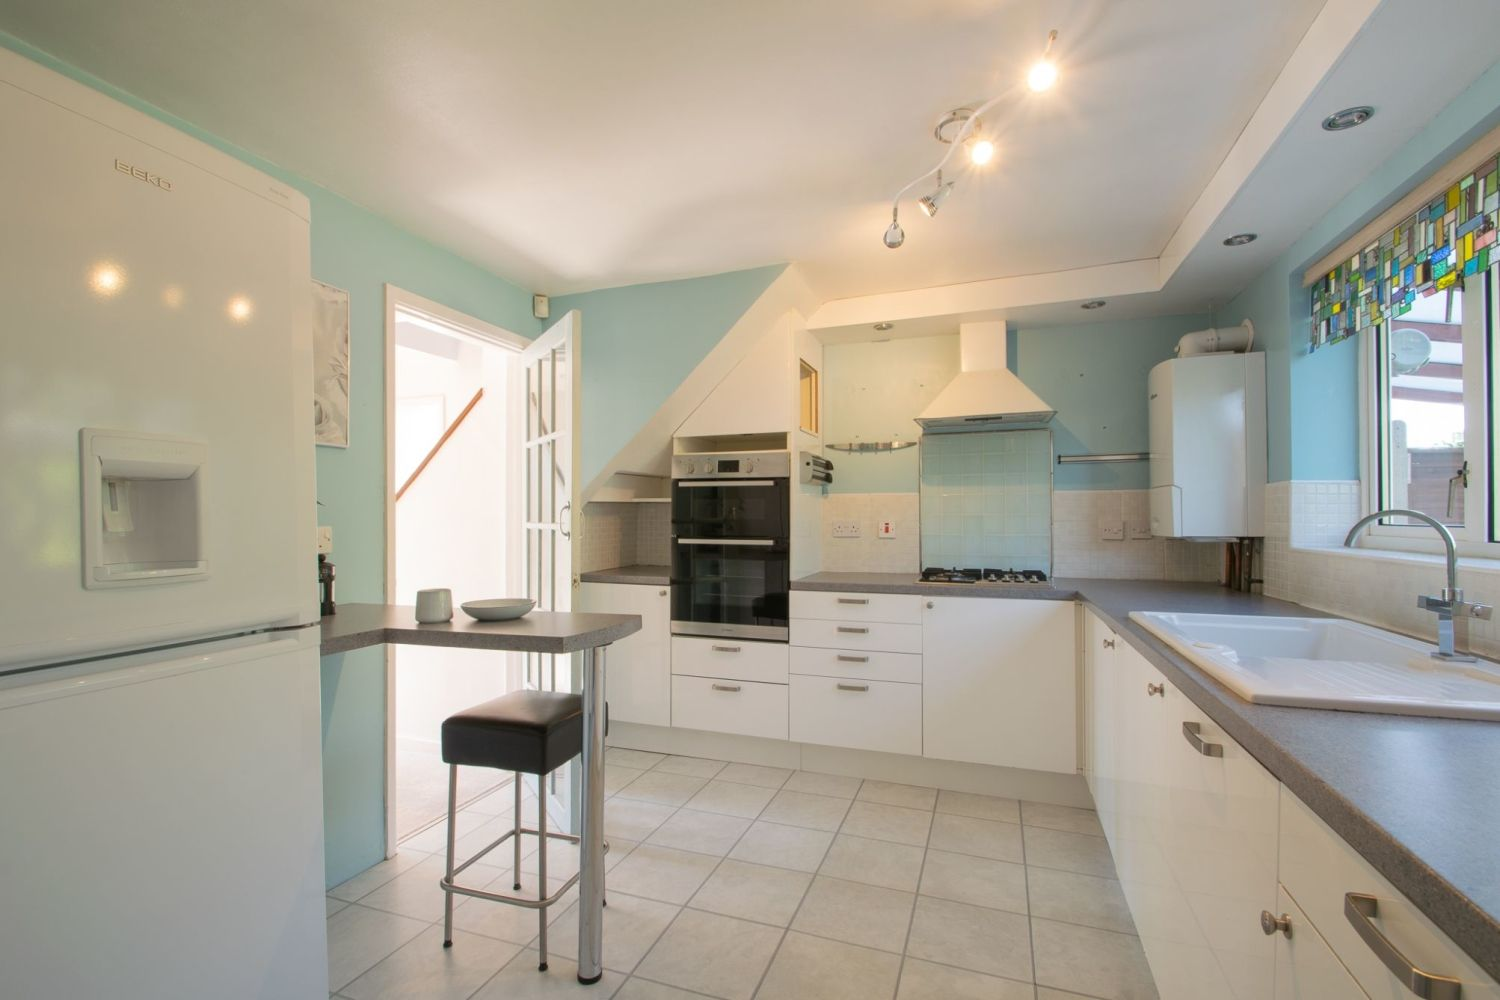 3 bed terraced for sale in Waverley Crescent, Romsley 5